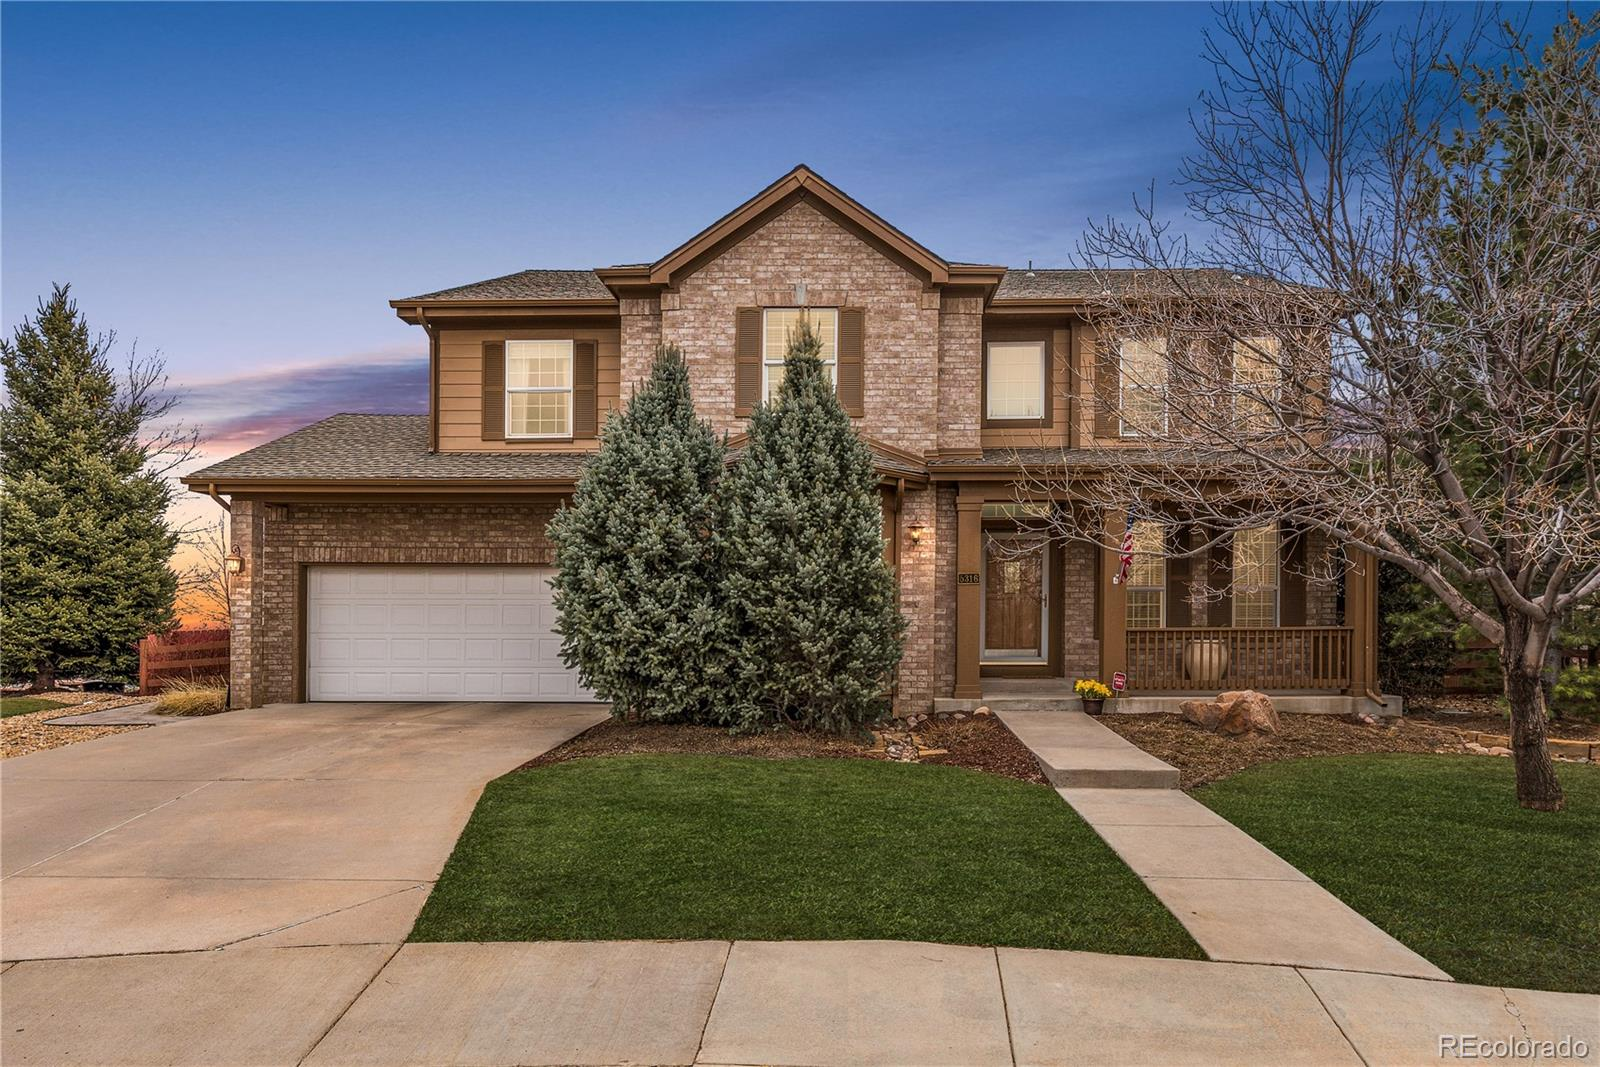 5316 Bayberry Court, Broomfield, CO 80020 - Broomfield, CO real estate listing